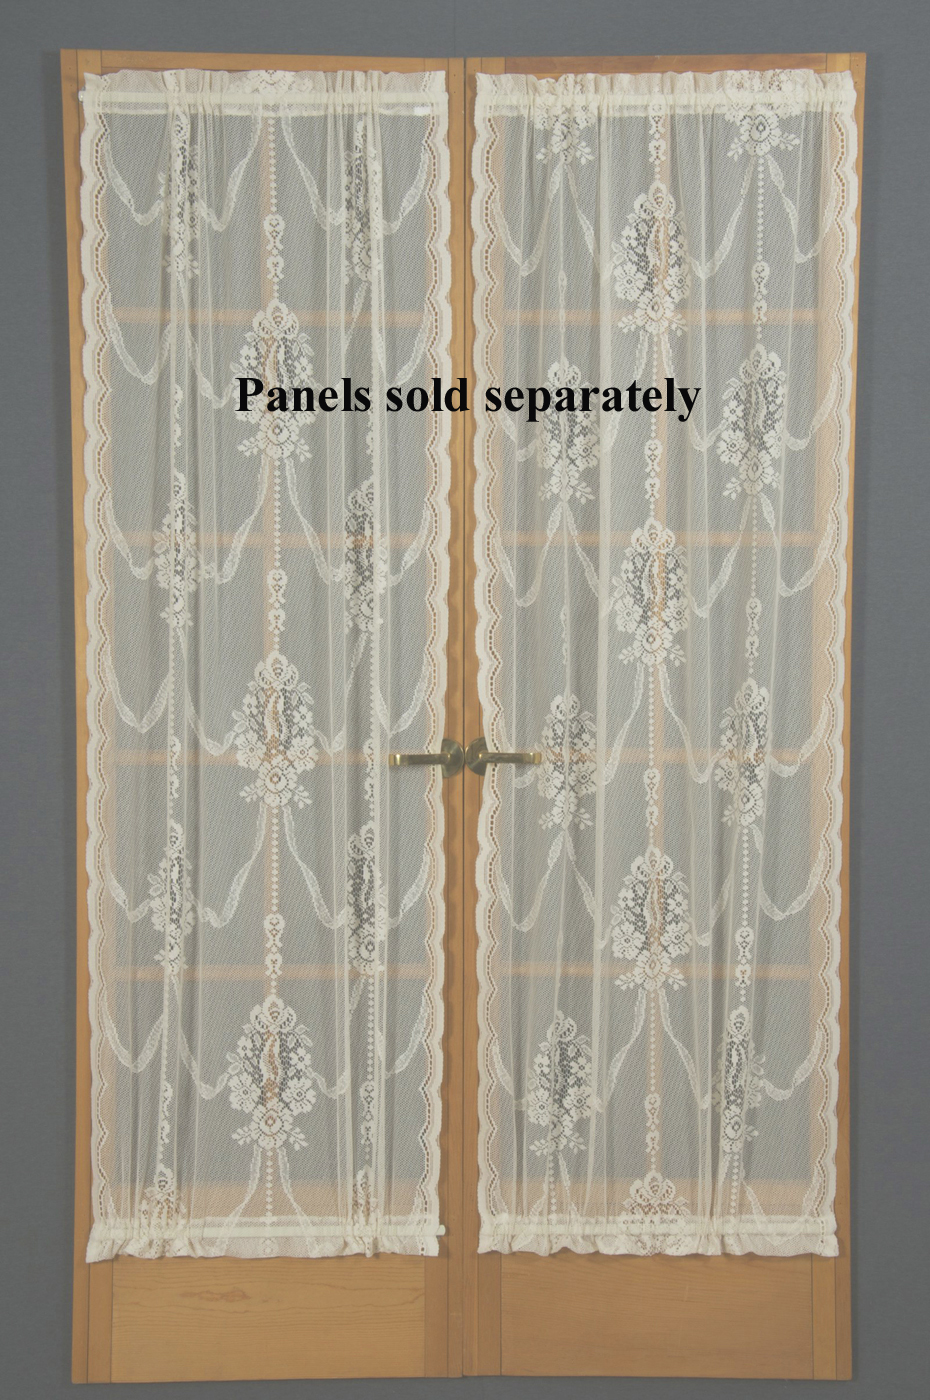 Ordinaire American Balmore Lace Door Panel. Zoom